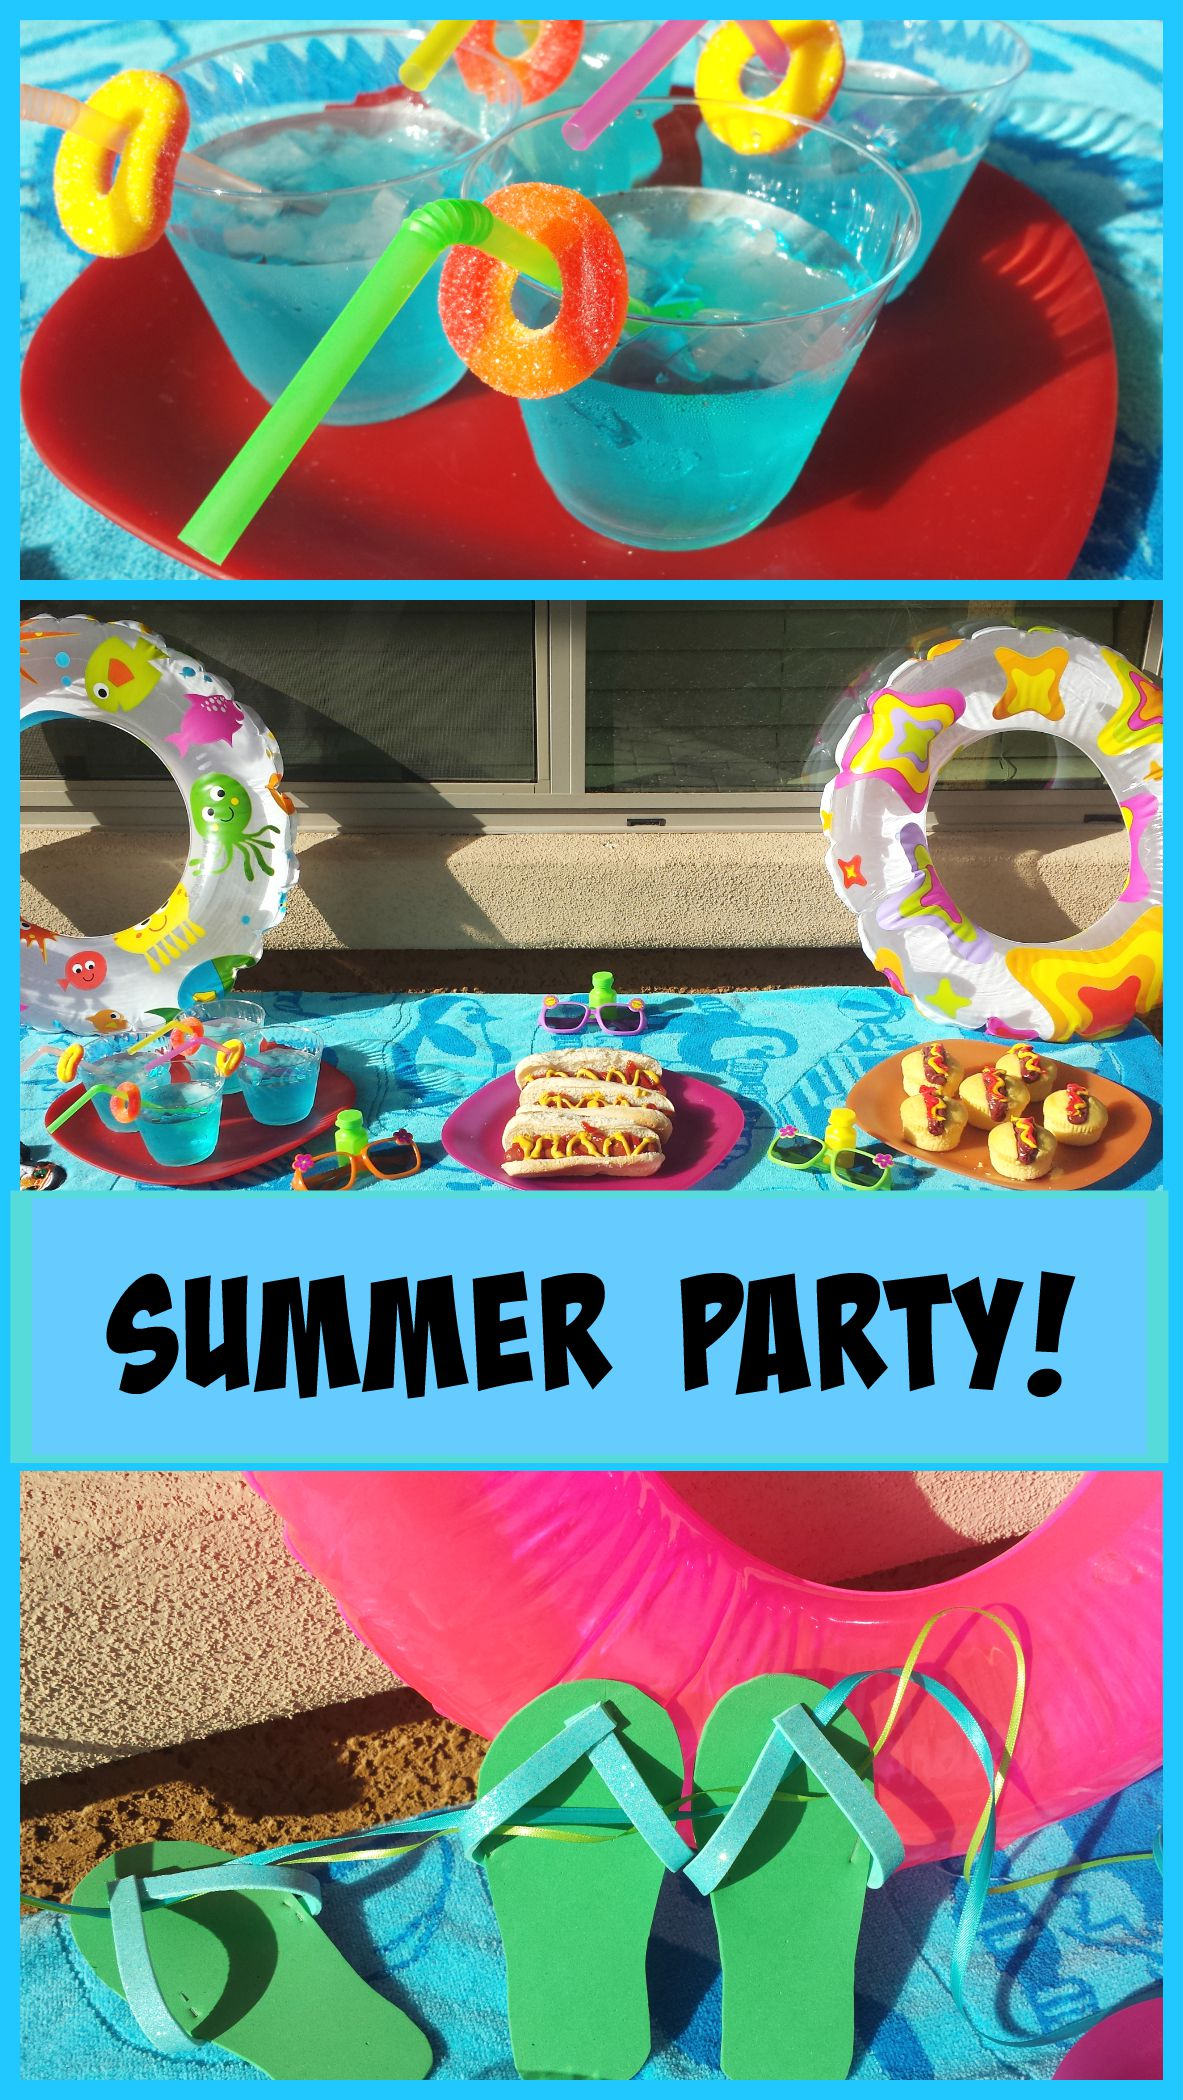 Summer party val event gal Summer party themes